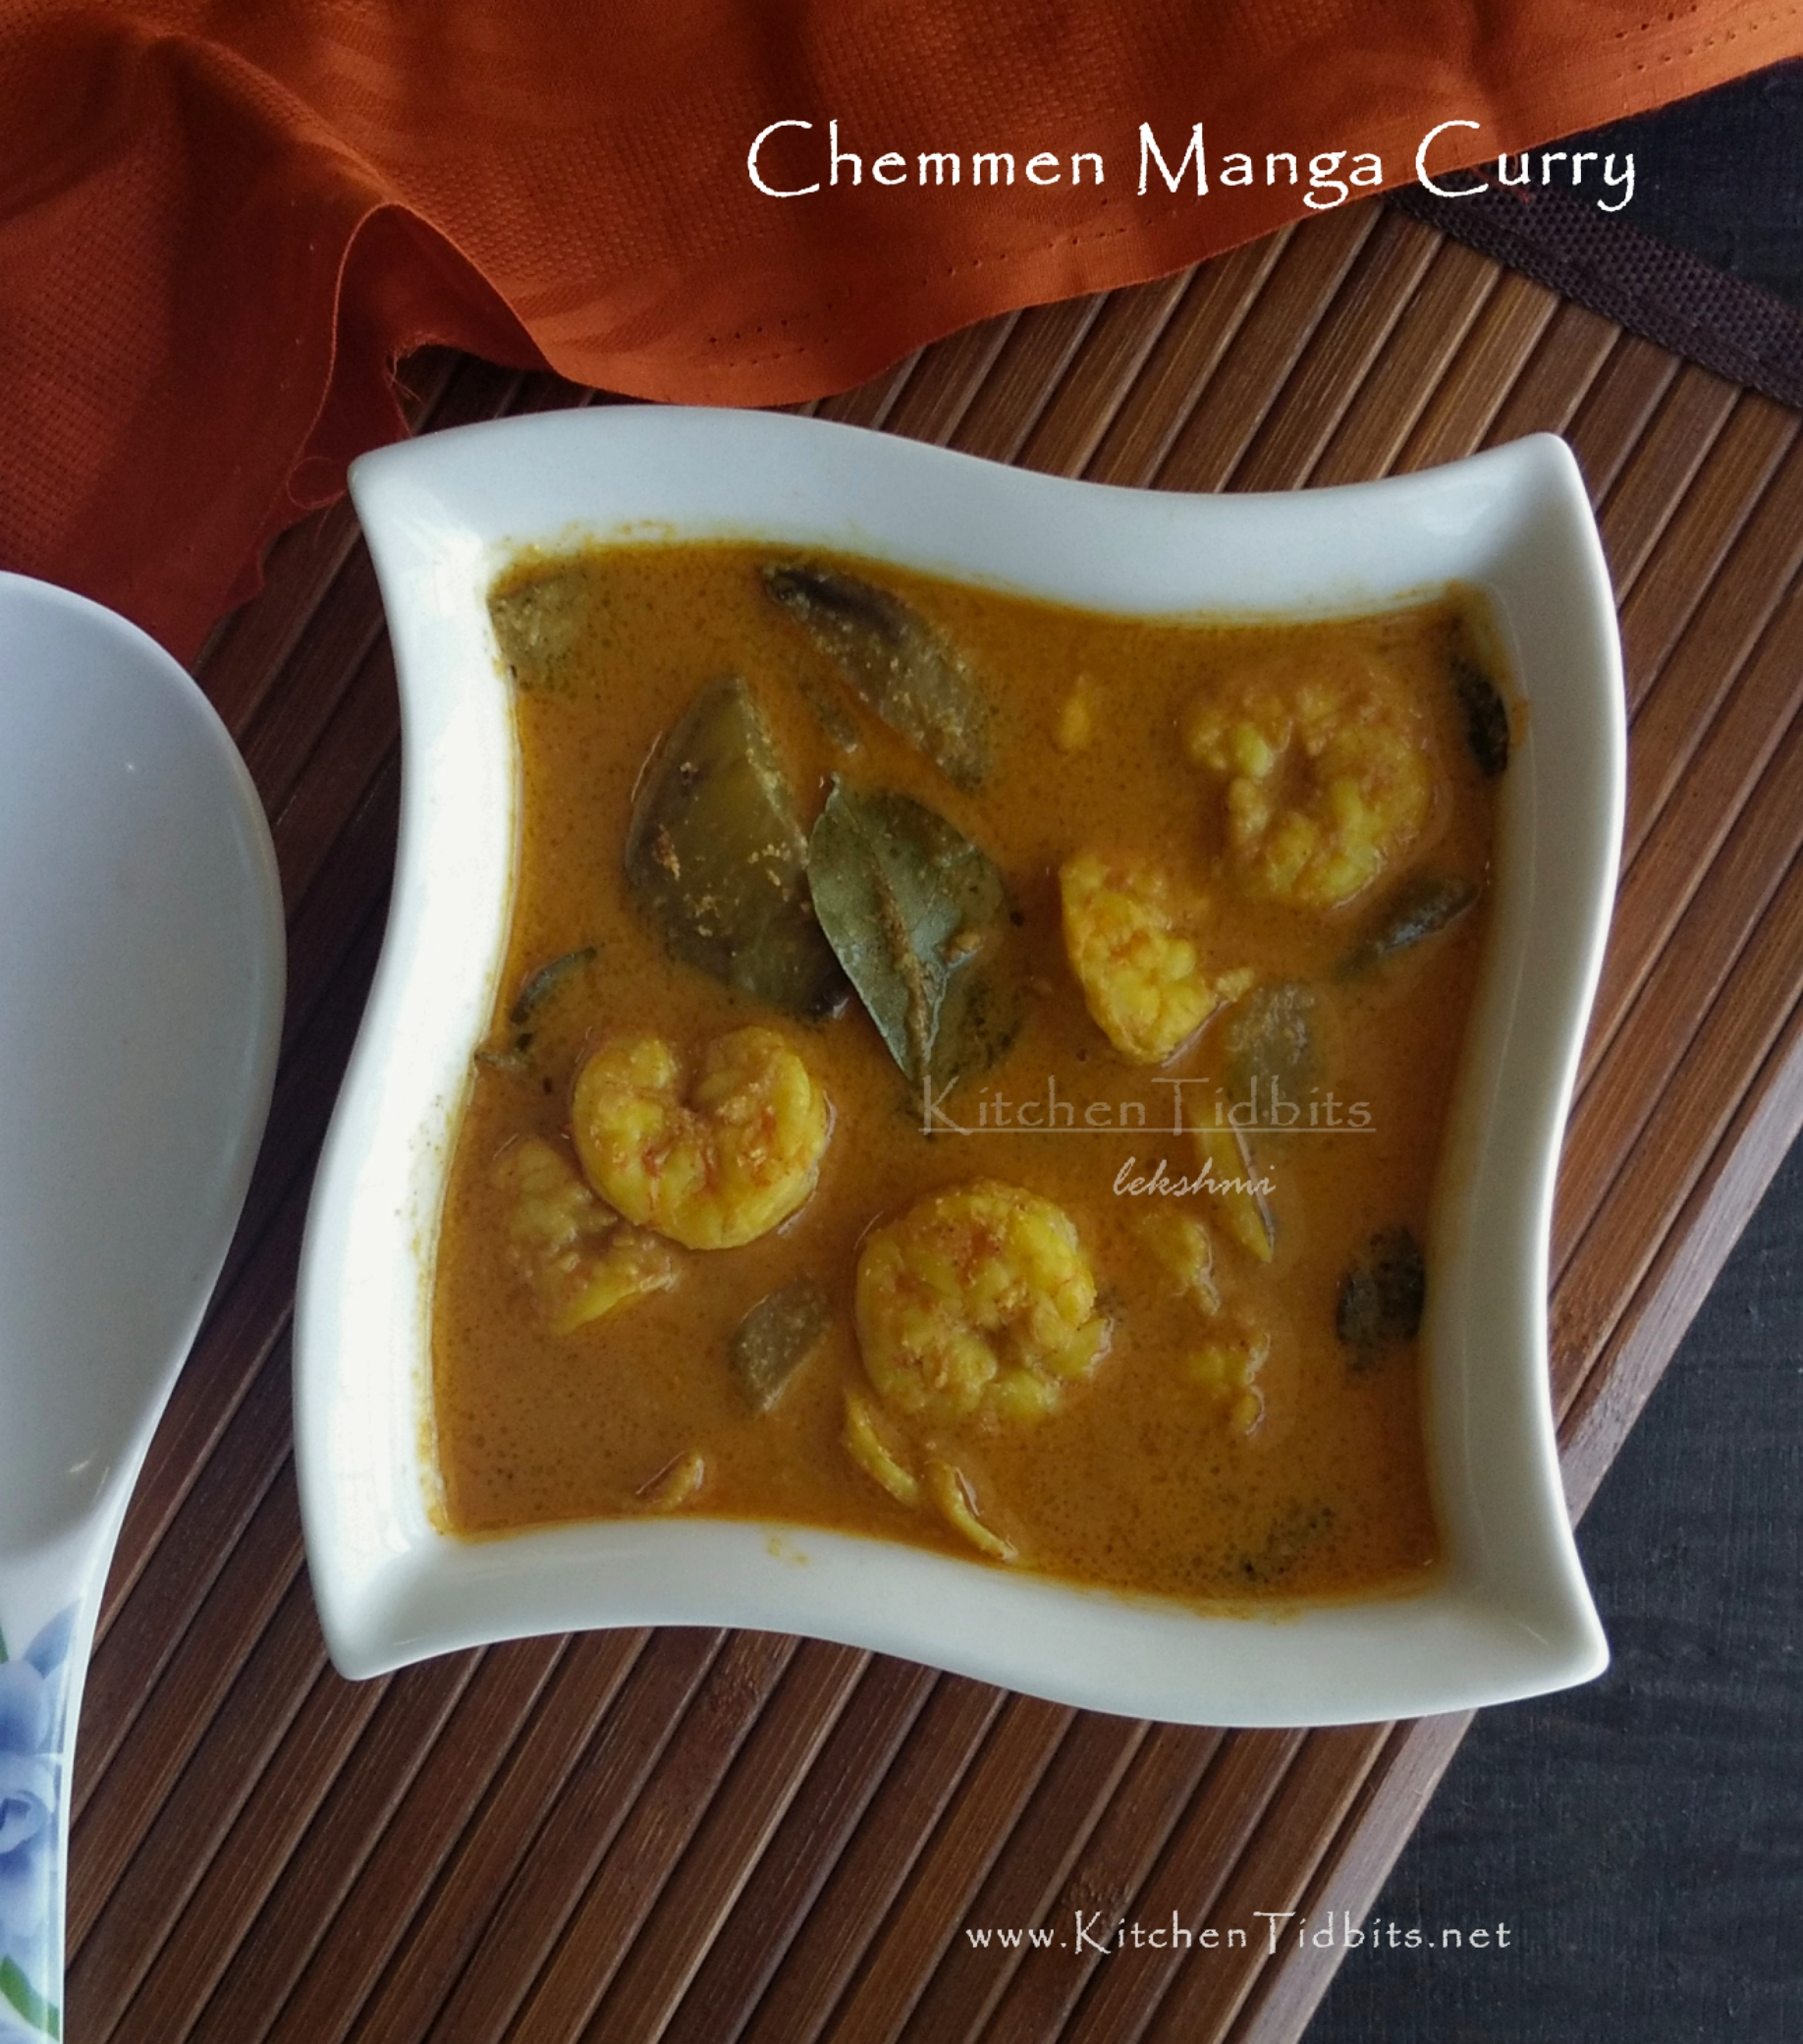 chemmen manga curryprawns mango curry - Curry Kitchen